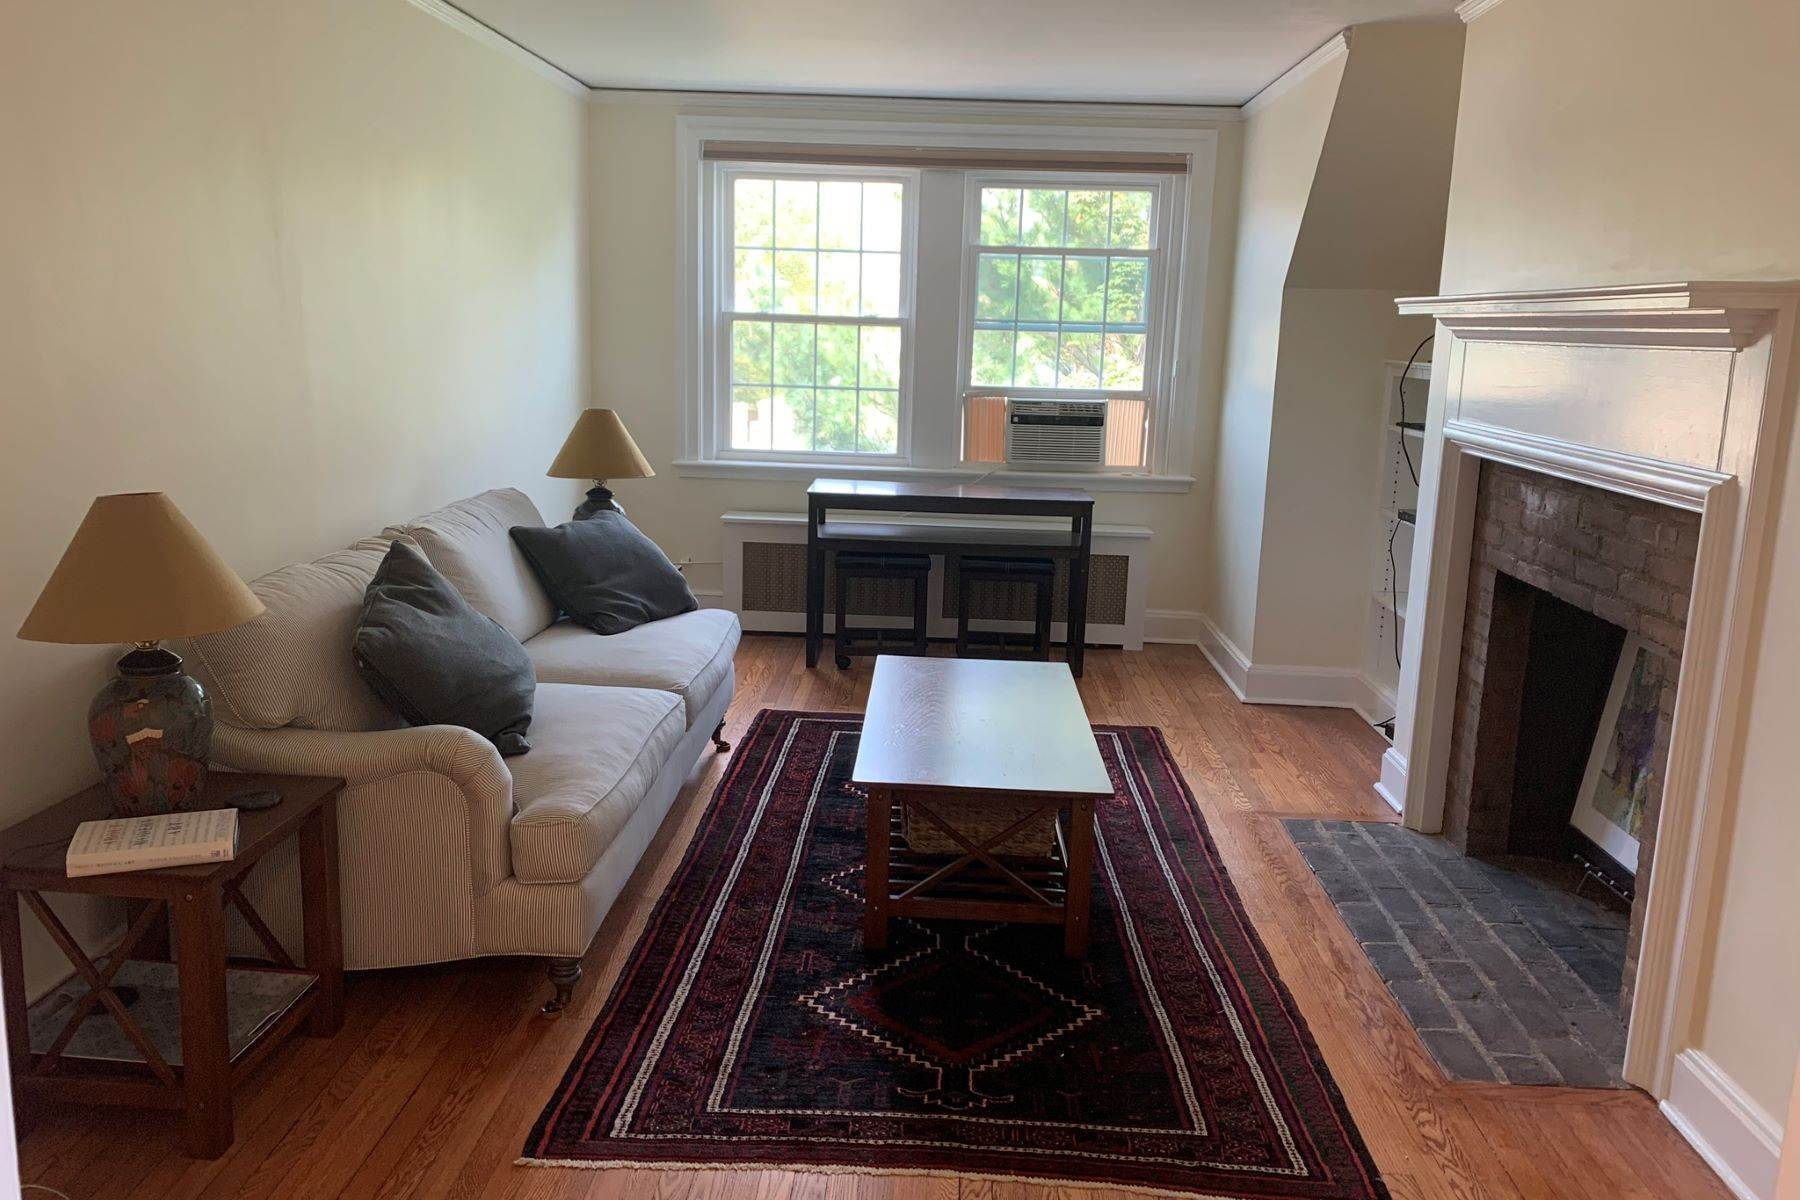 Condominiums at Fabulous In-Town One Bedroom Rental 49 Palmer Square, Unit O, Princeton, New Jersey 08542 United States